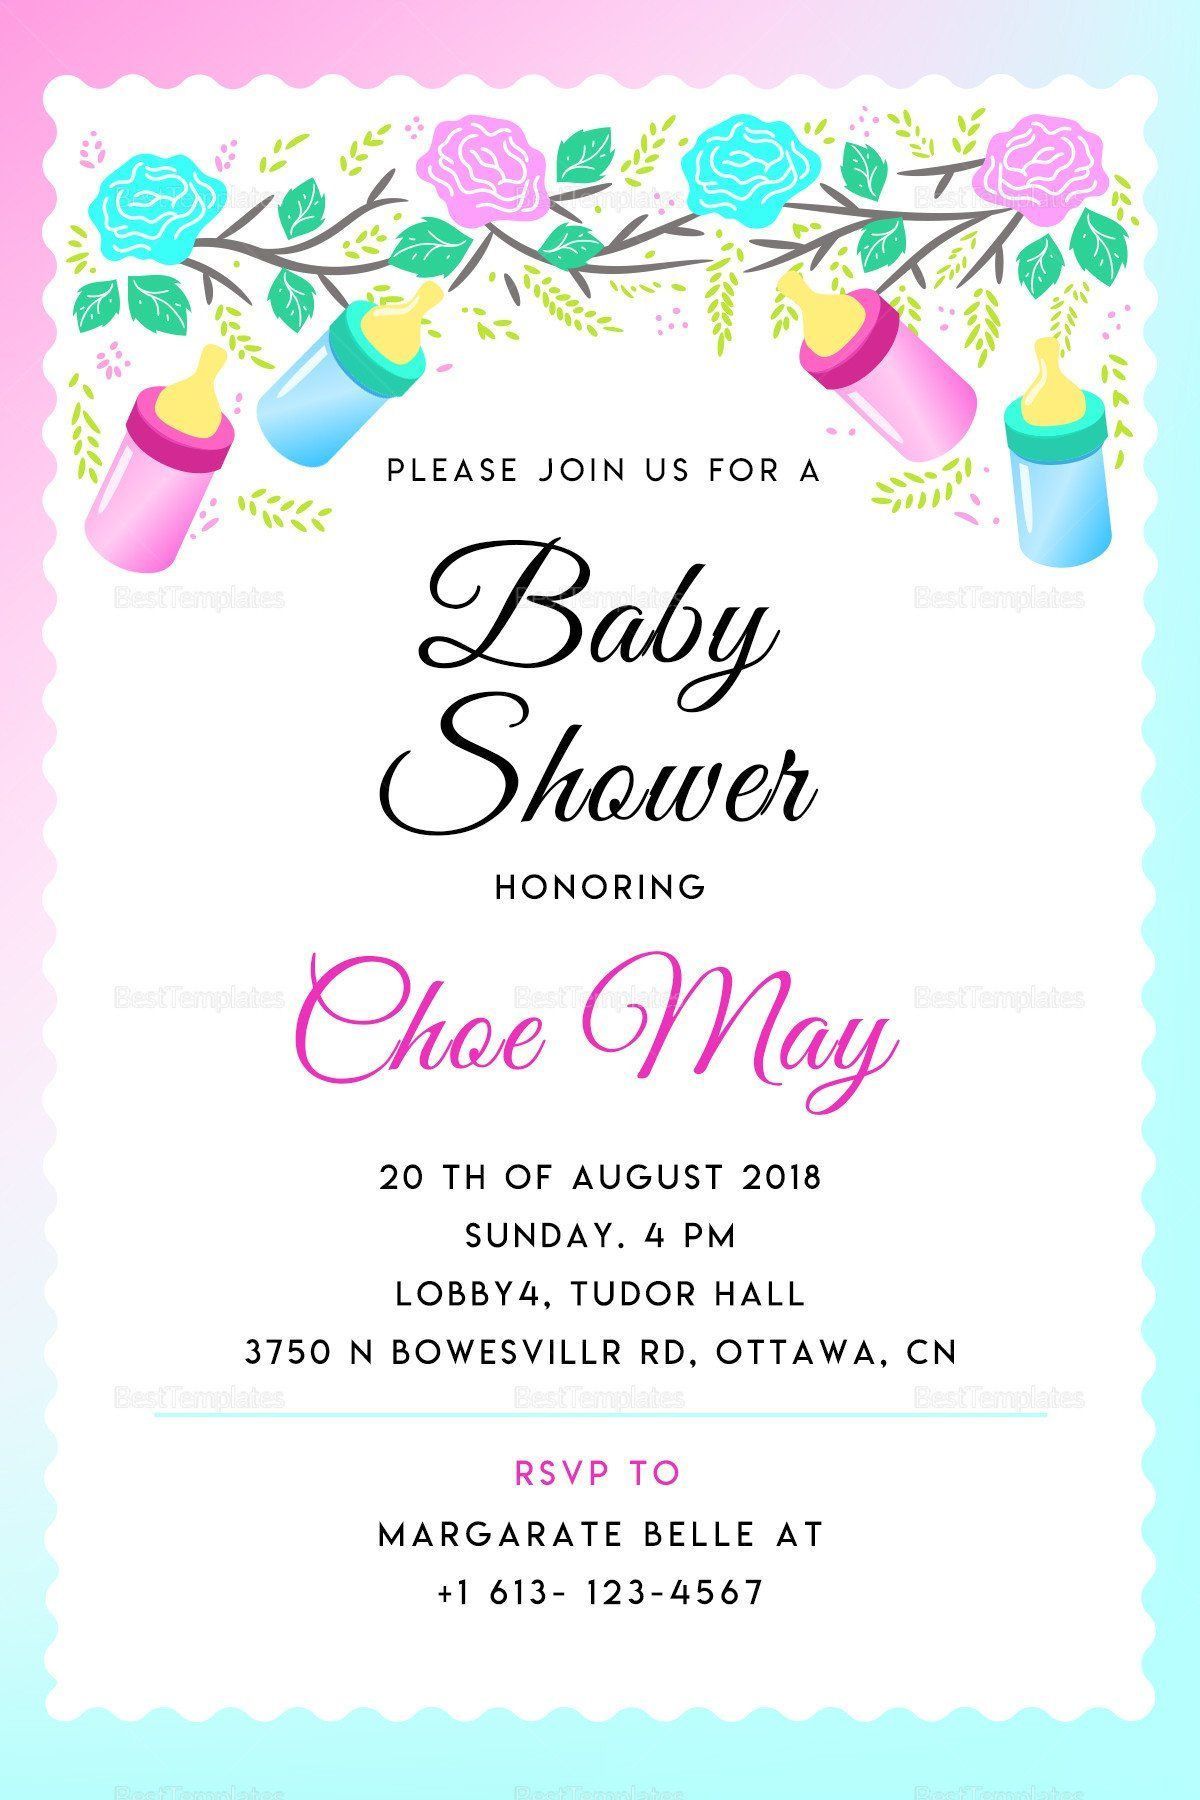 003 Incredible Baby Shower Invite Template Word Sample  Work Invitation Wording Format In M Free MicrosoftFull